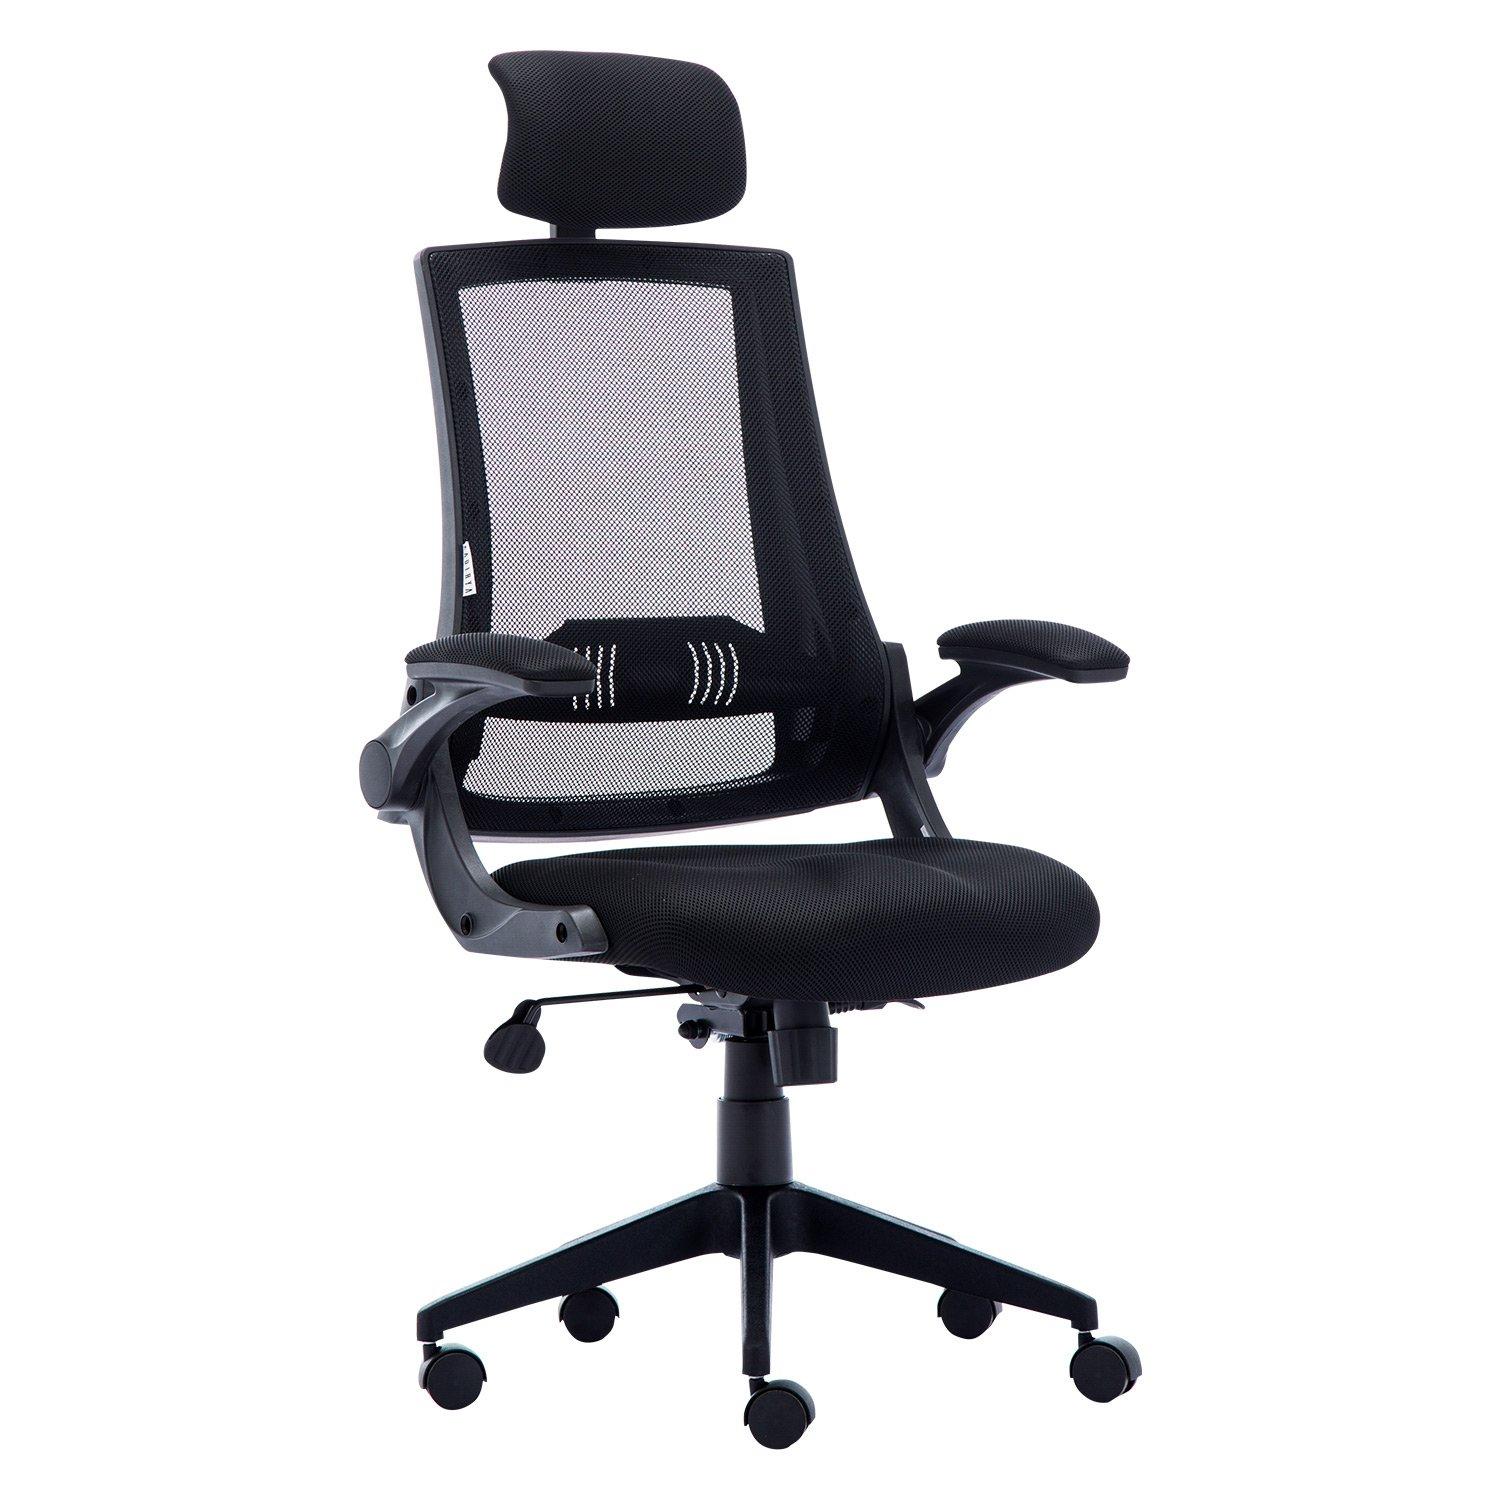 Amazoncom Lch Ergonomic High Back Mesh Office Chair With Ajustable